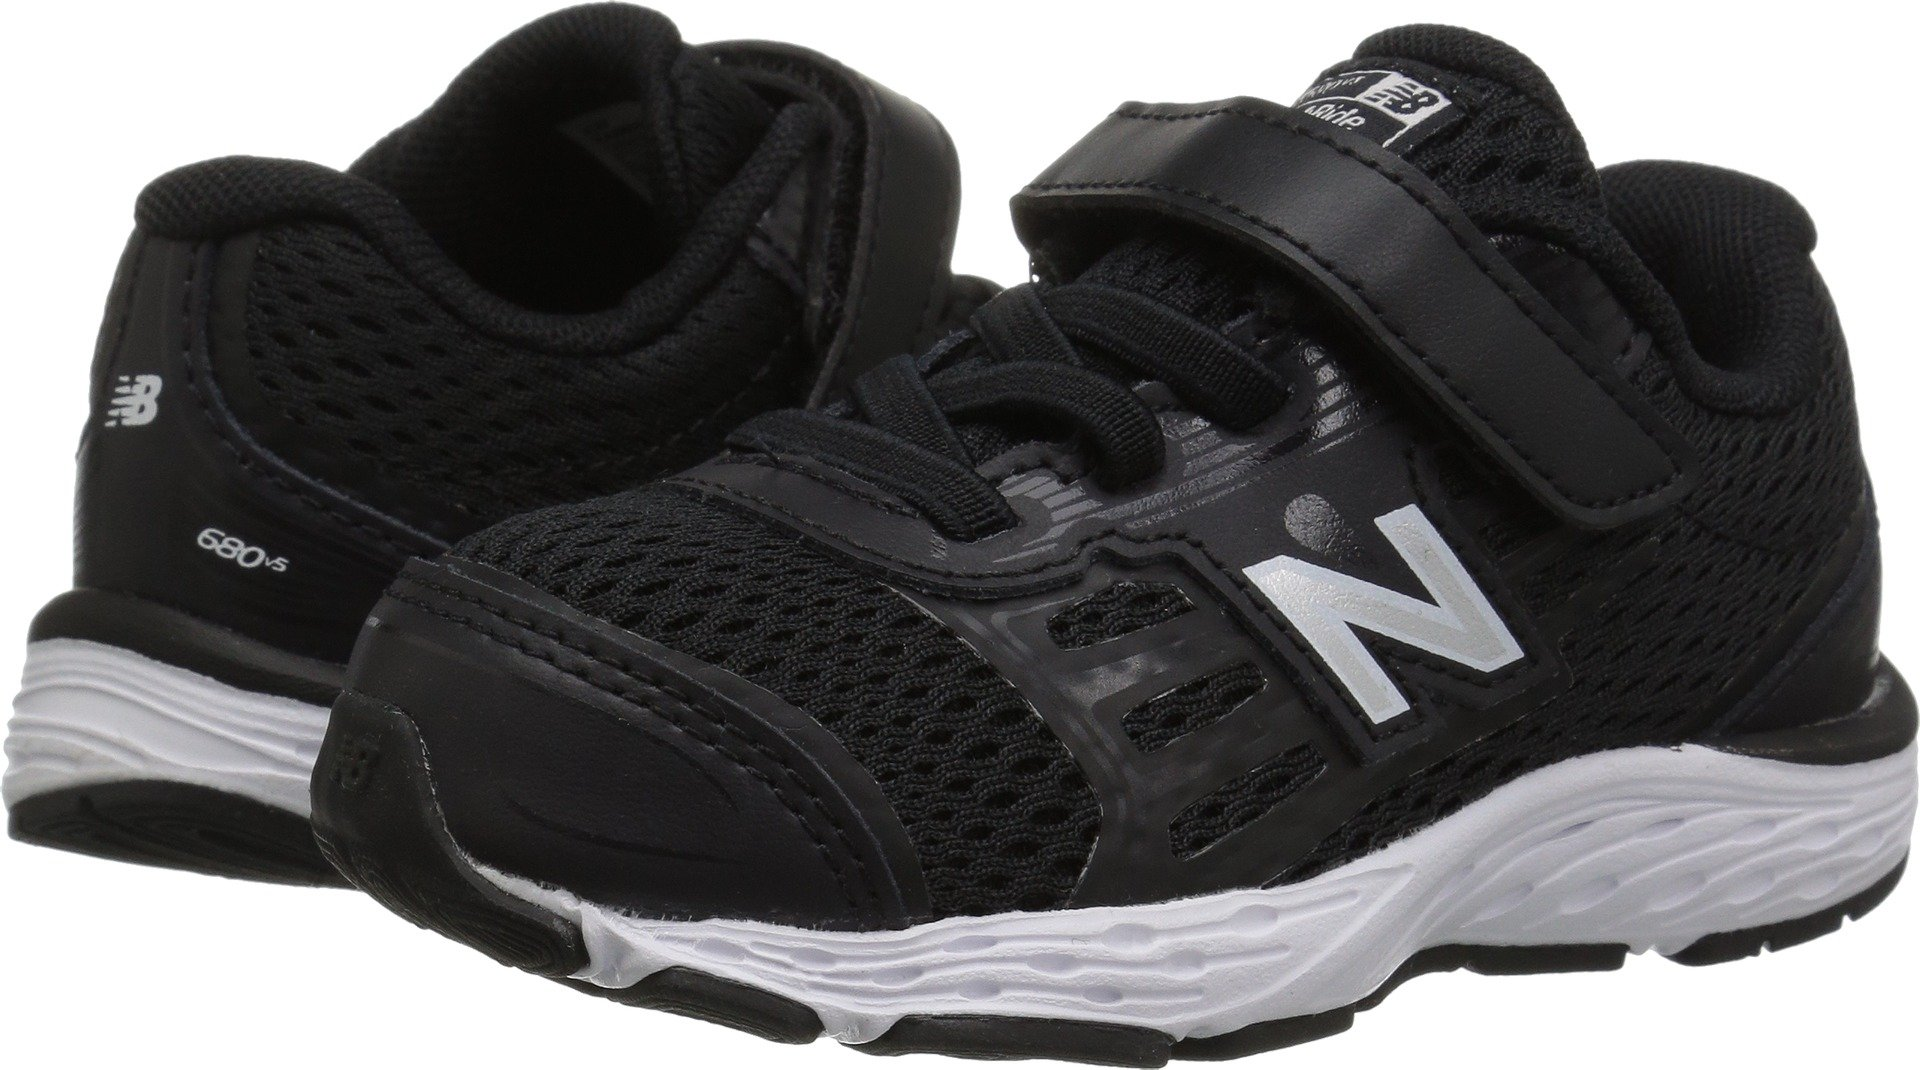 New Balance Boys' 680v5 Hook and Loop Running Shoe, Black/White, 10 M US Toddler